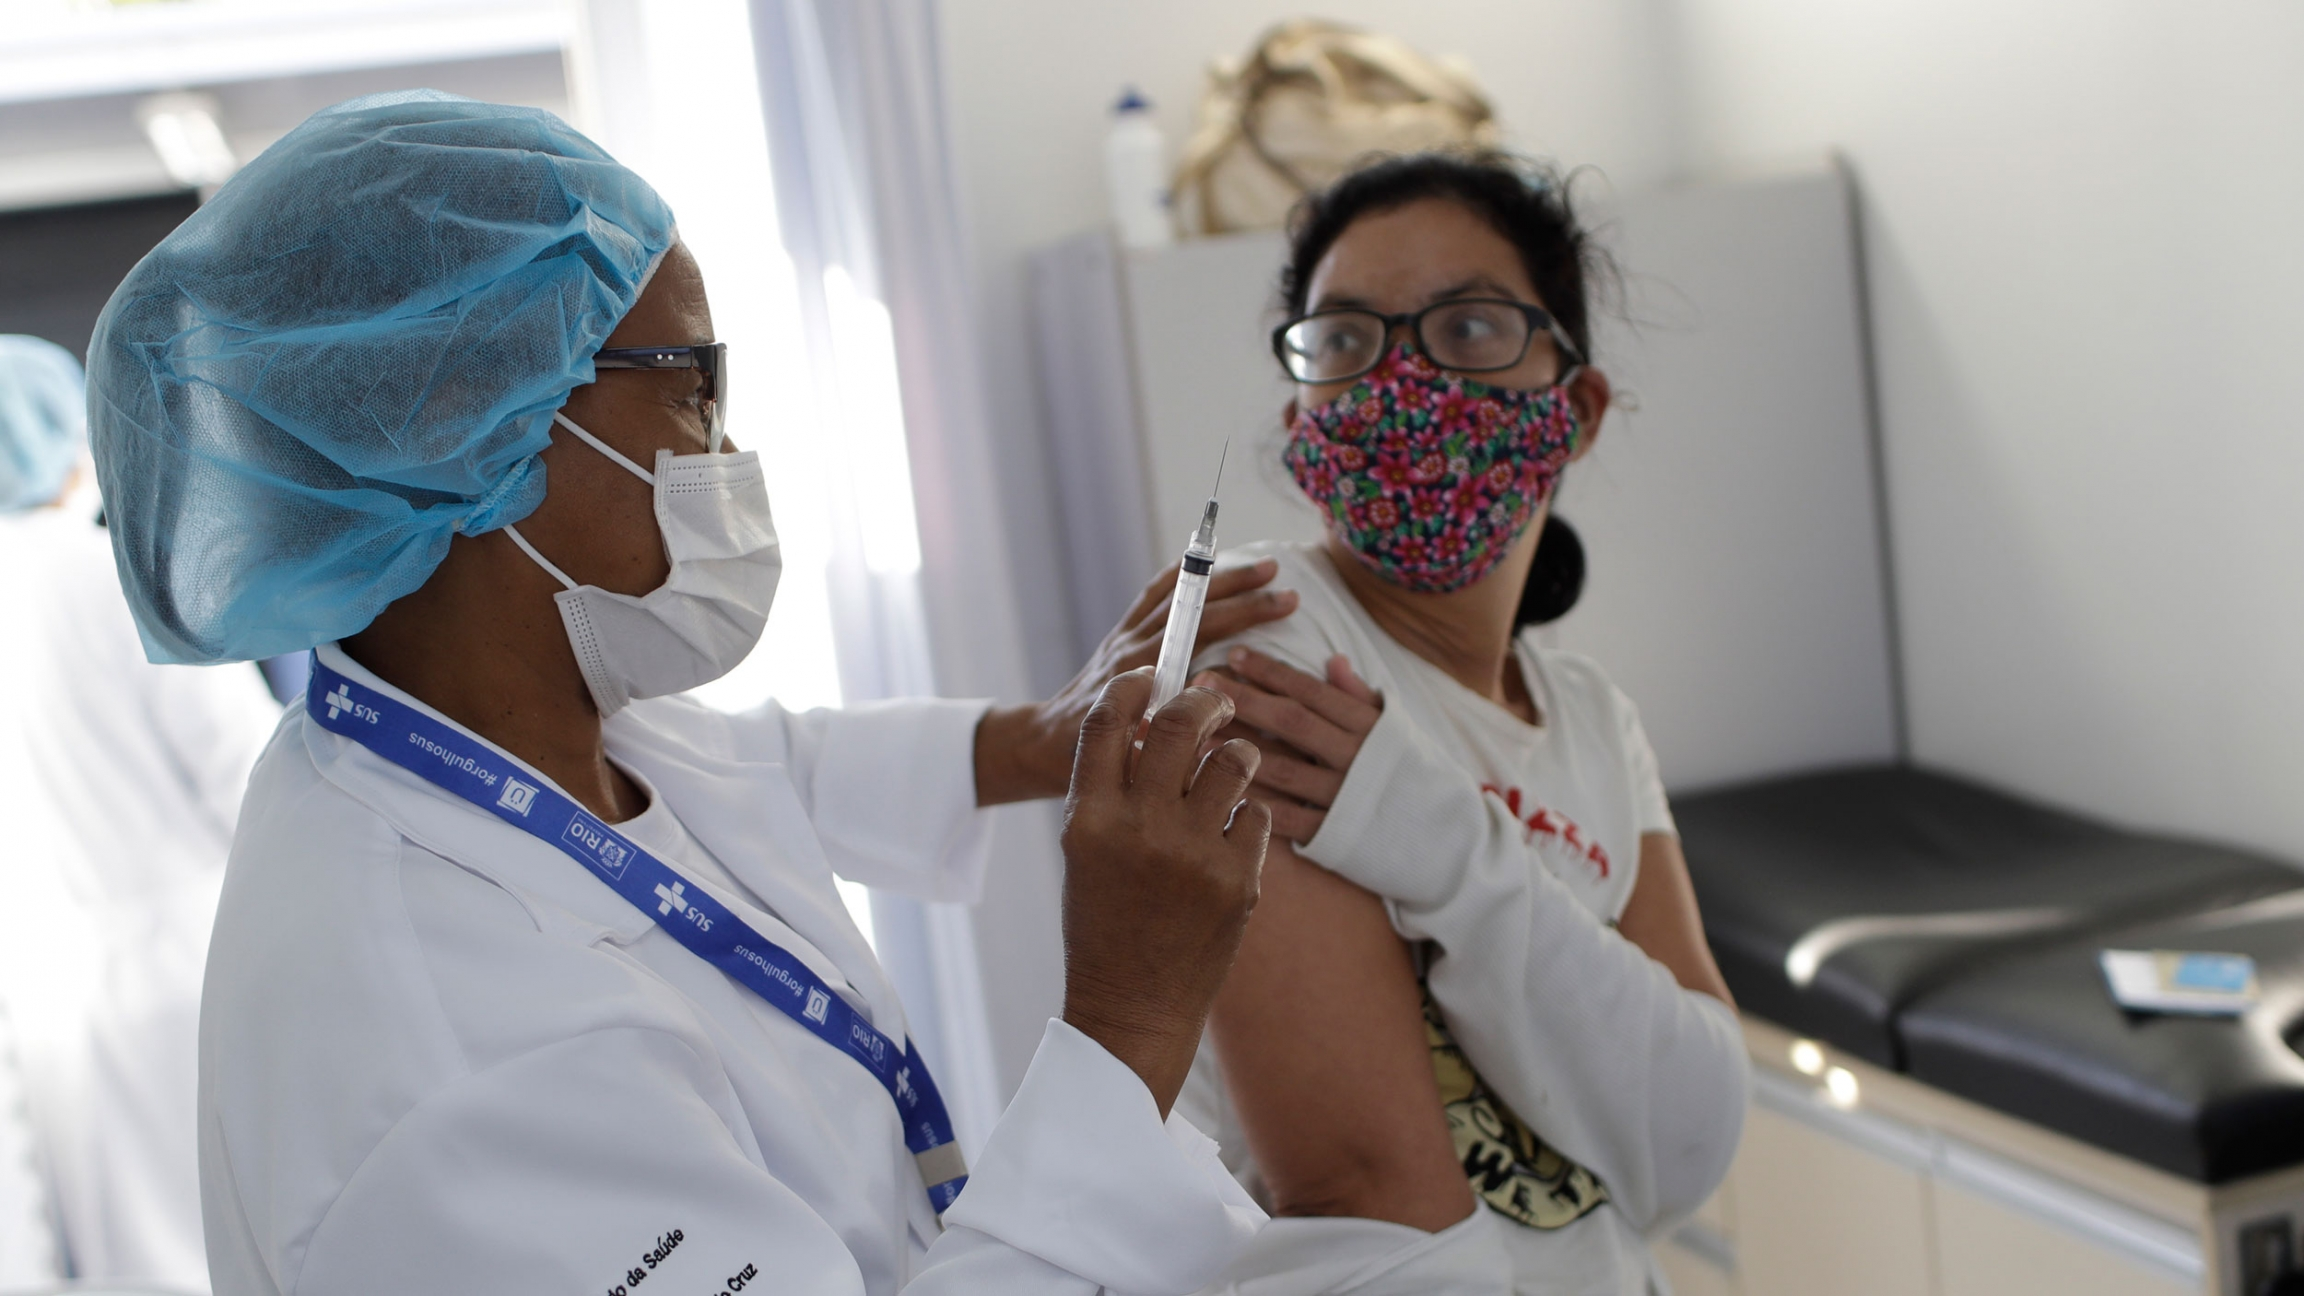 A resident gets a dose of the AstraZeneca vaccine on the first day of a three-day COVID-19 vaccination campaign for people over age 35 in the Complexo da Maré favela of Rio de Janeiro, Brazil, Brazil, Thursday, July 29, 2021.